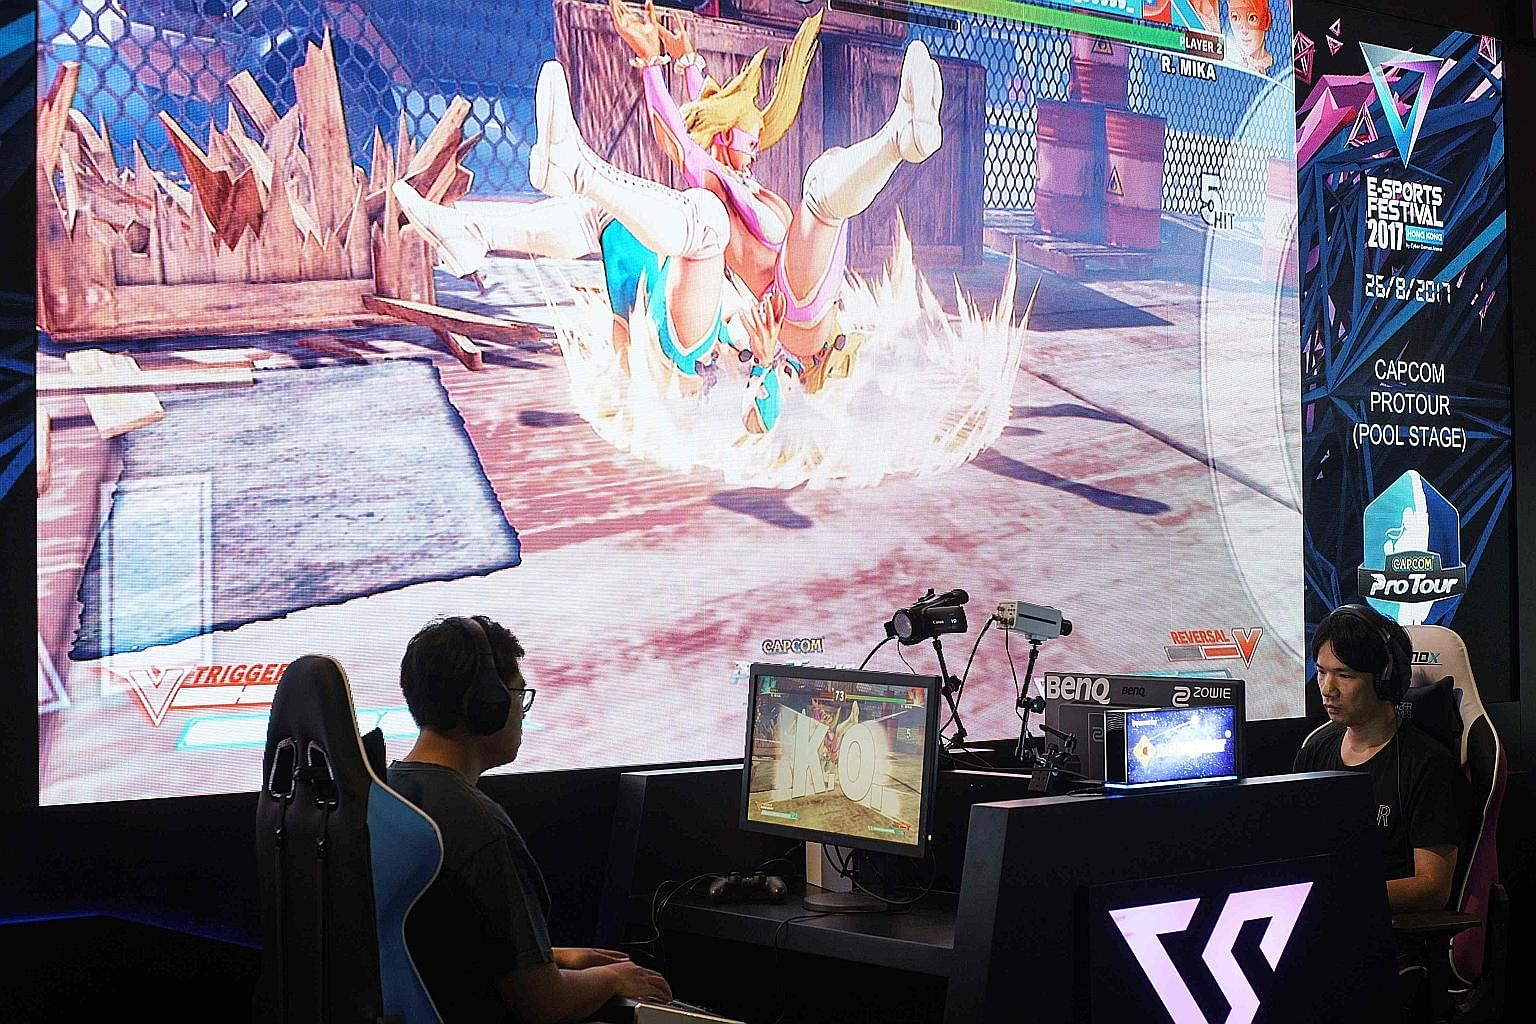 Gamers taking part in the Hong Kong eSports festival recently. All the infrastructural support in the world can't change how the public views competitive gaming if players fixate only on skill and neglect to build mass-market appeal.